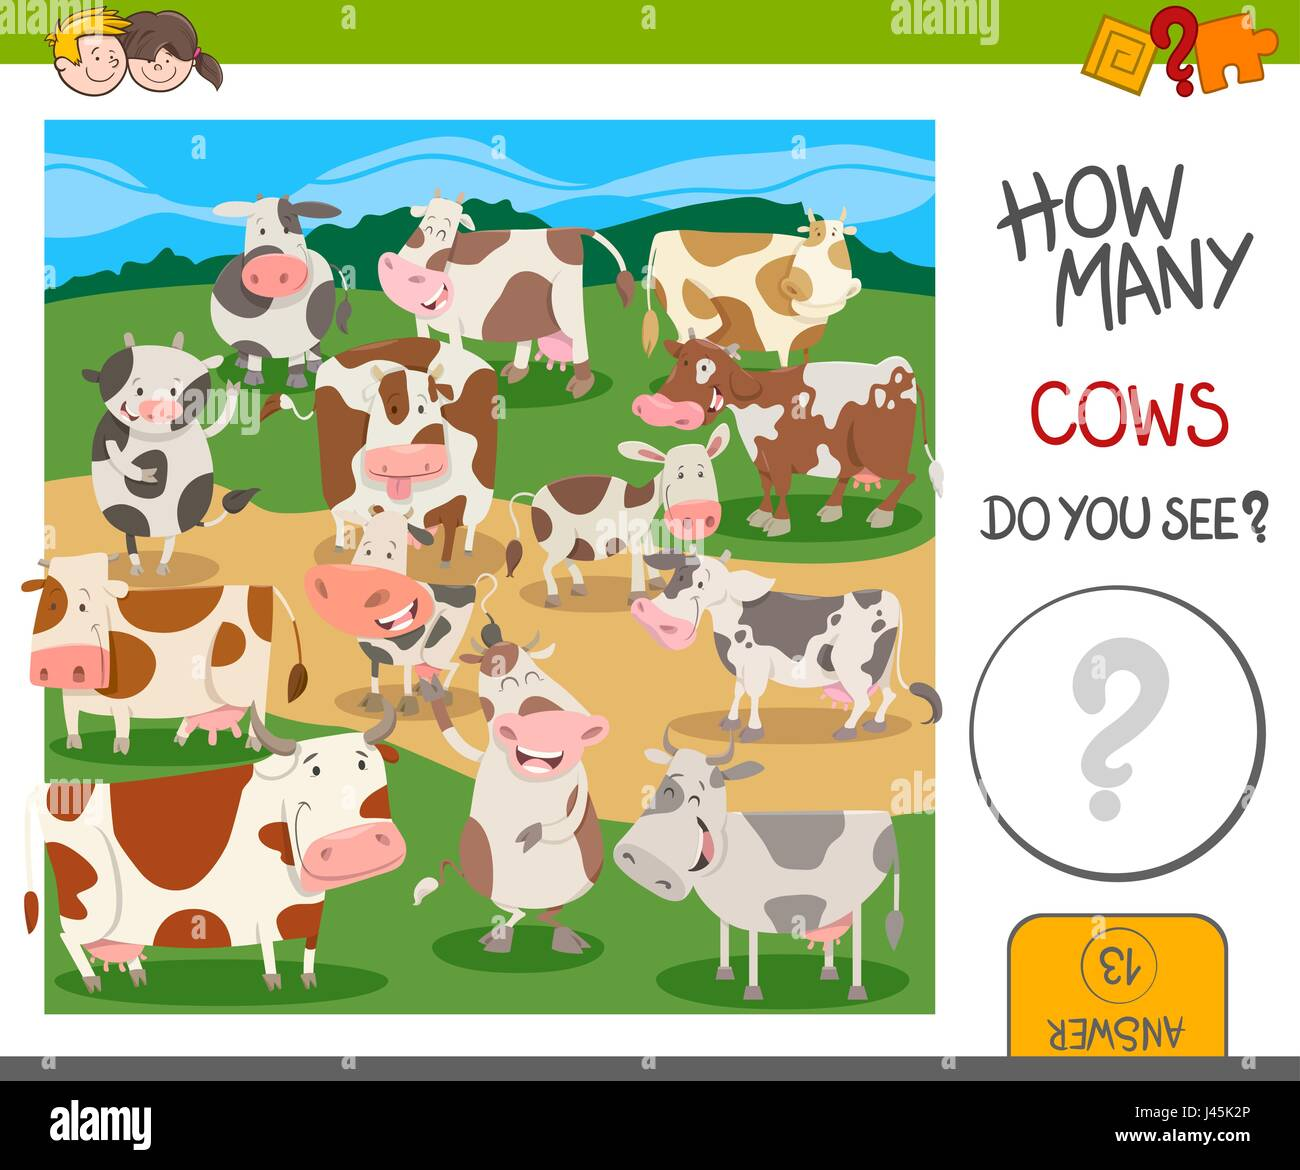 Group Cows Cartoon Stock Photos Amp Group Cows Cartoon Stock